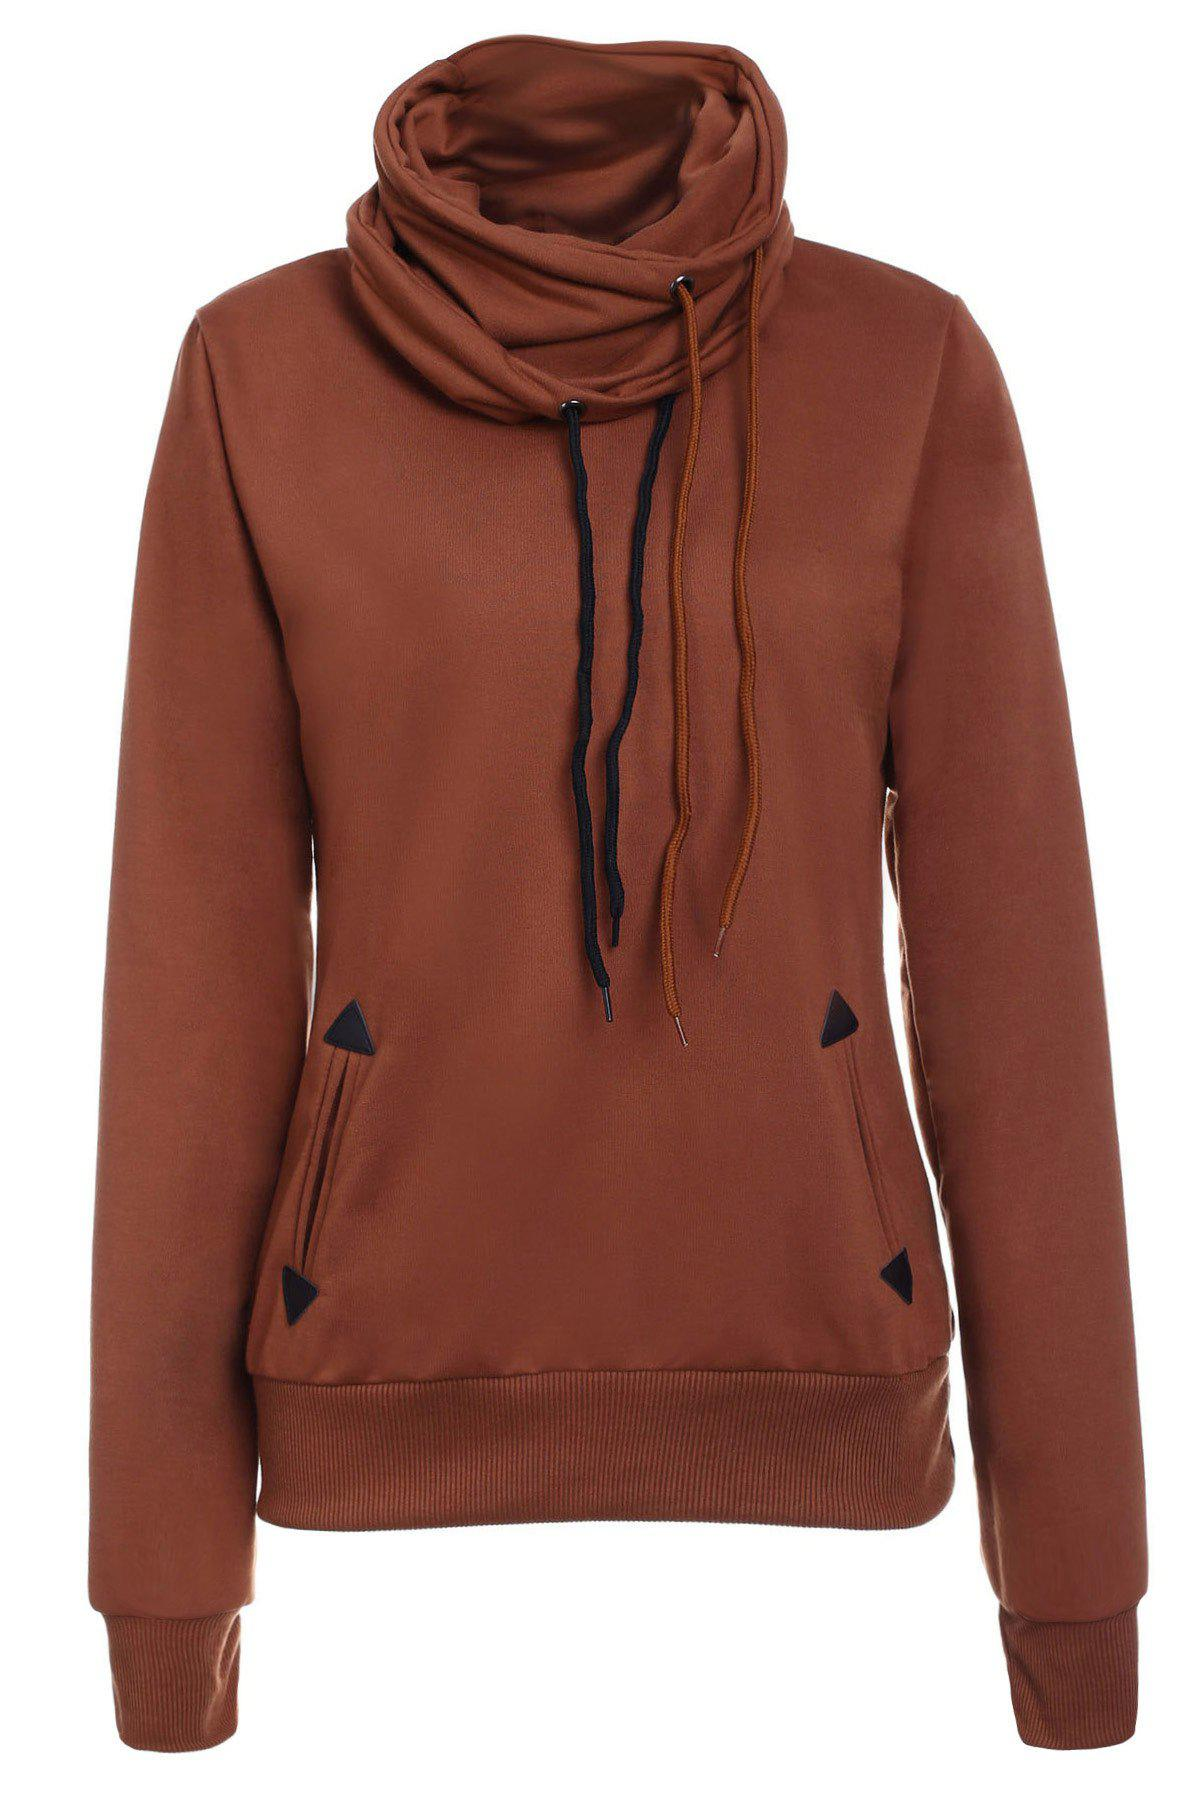 Layered Collar Pullover Drawstring SweatshirtWOMEN<br><br>Size: S; Color: BROWN; Material: Polyester; Shirt Length: Regular; Sleeve Length: Full; Style: Fashion; Pattern Style: Solid; Weight: 0.470kg; Package Contents: 1 x Sweatshirt;